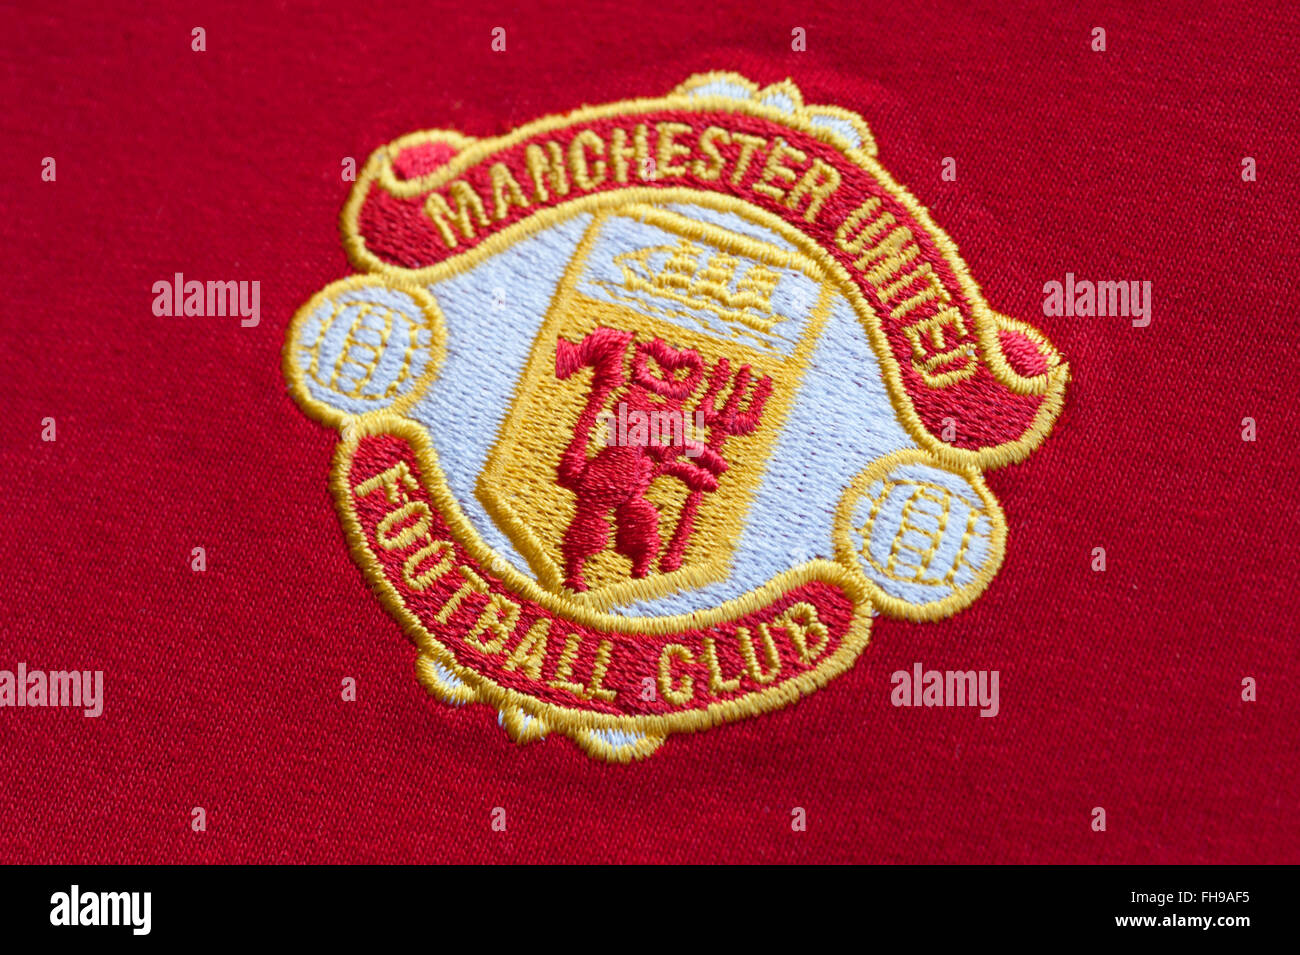 Close up of traditional Manchester United Football Club Badge - Stock Image